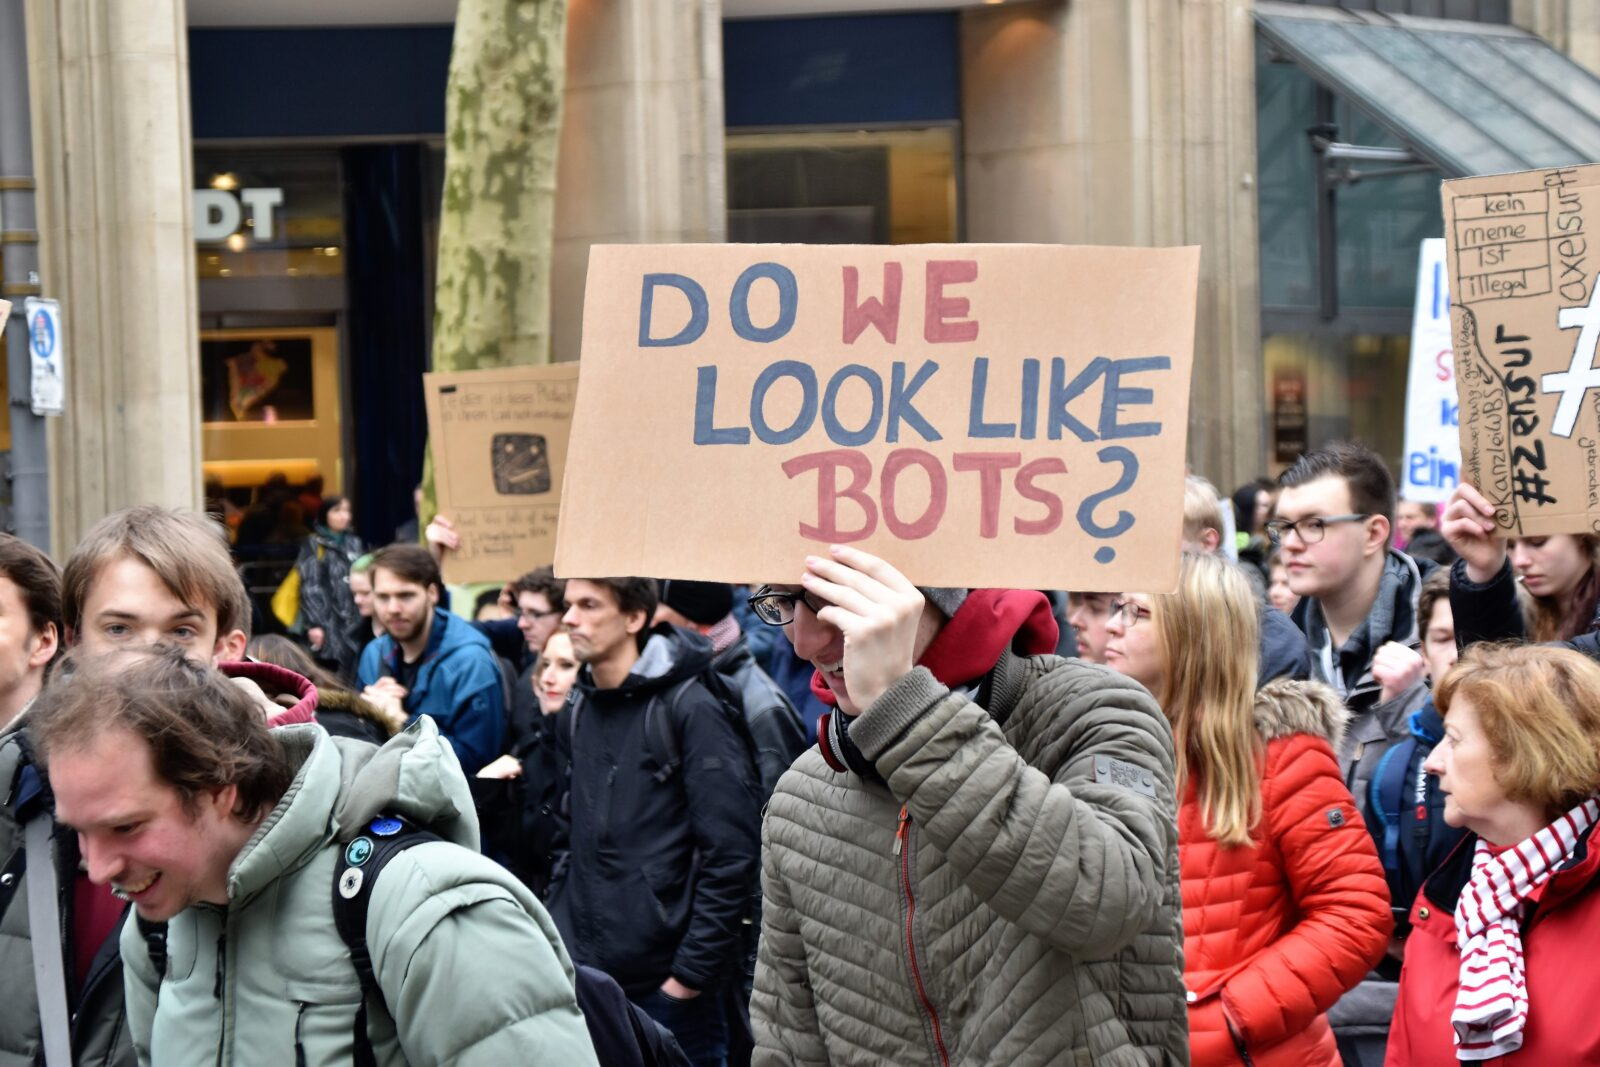 Bots sign at Protest